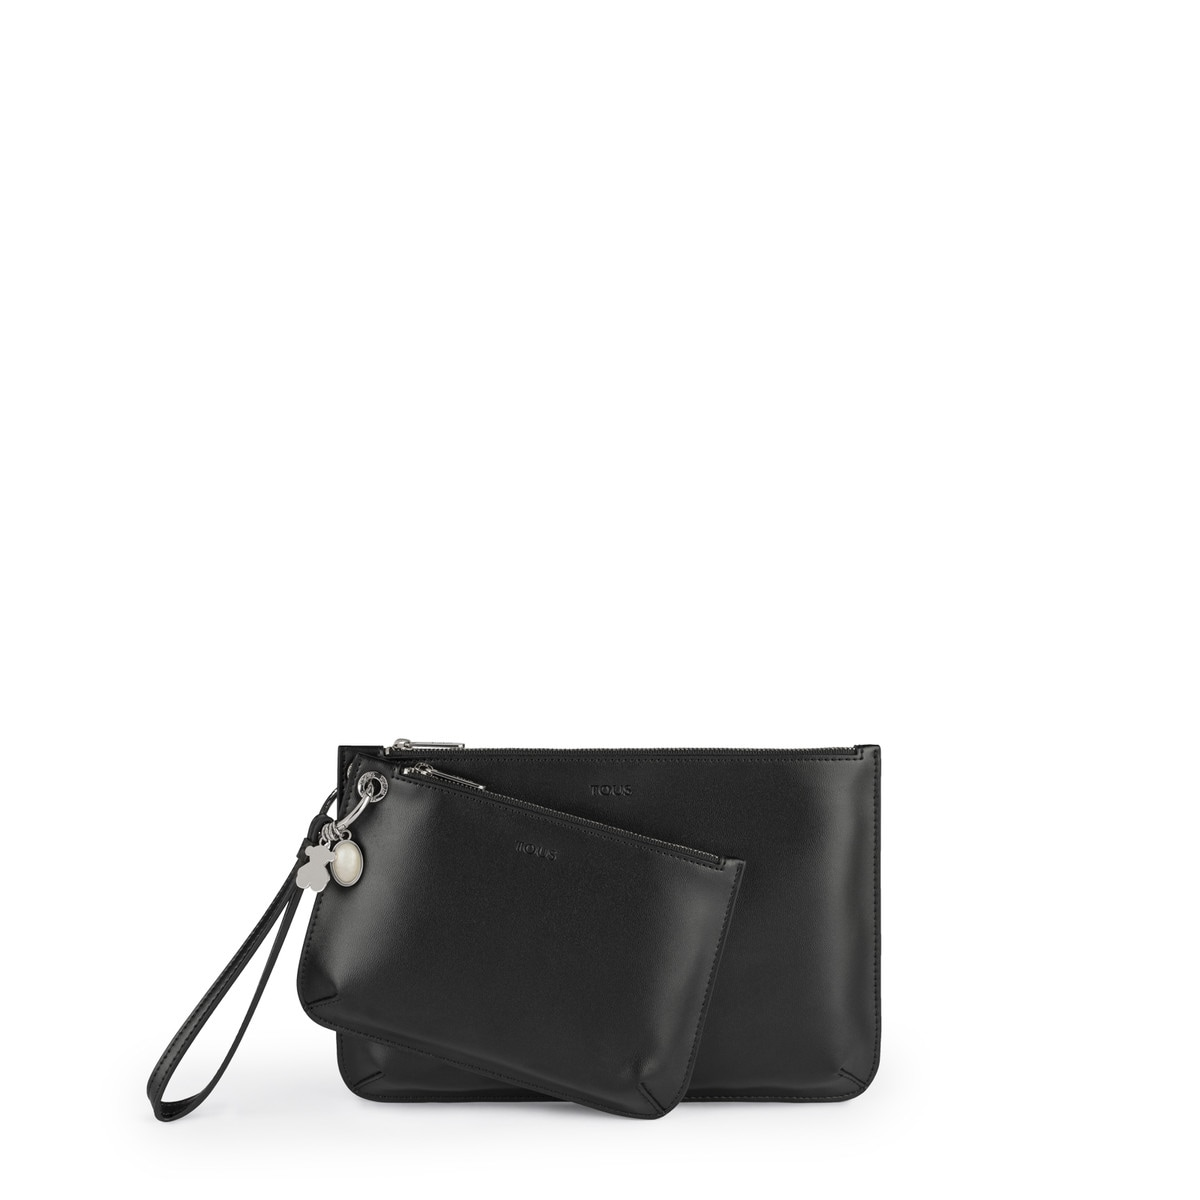 aadb0c0e Black Hold Clutch bag - Tous Site US